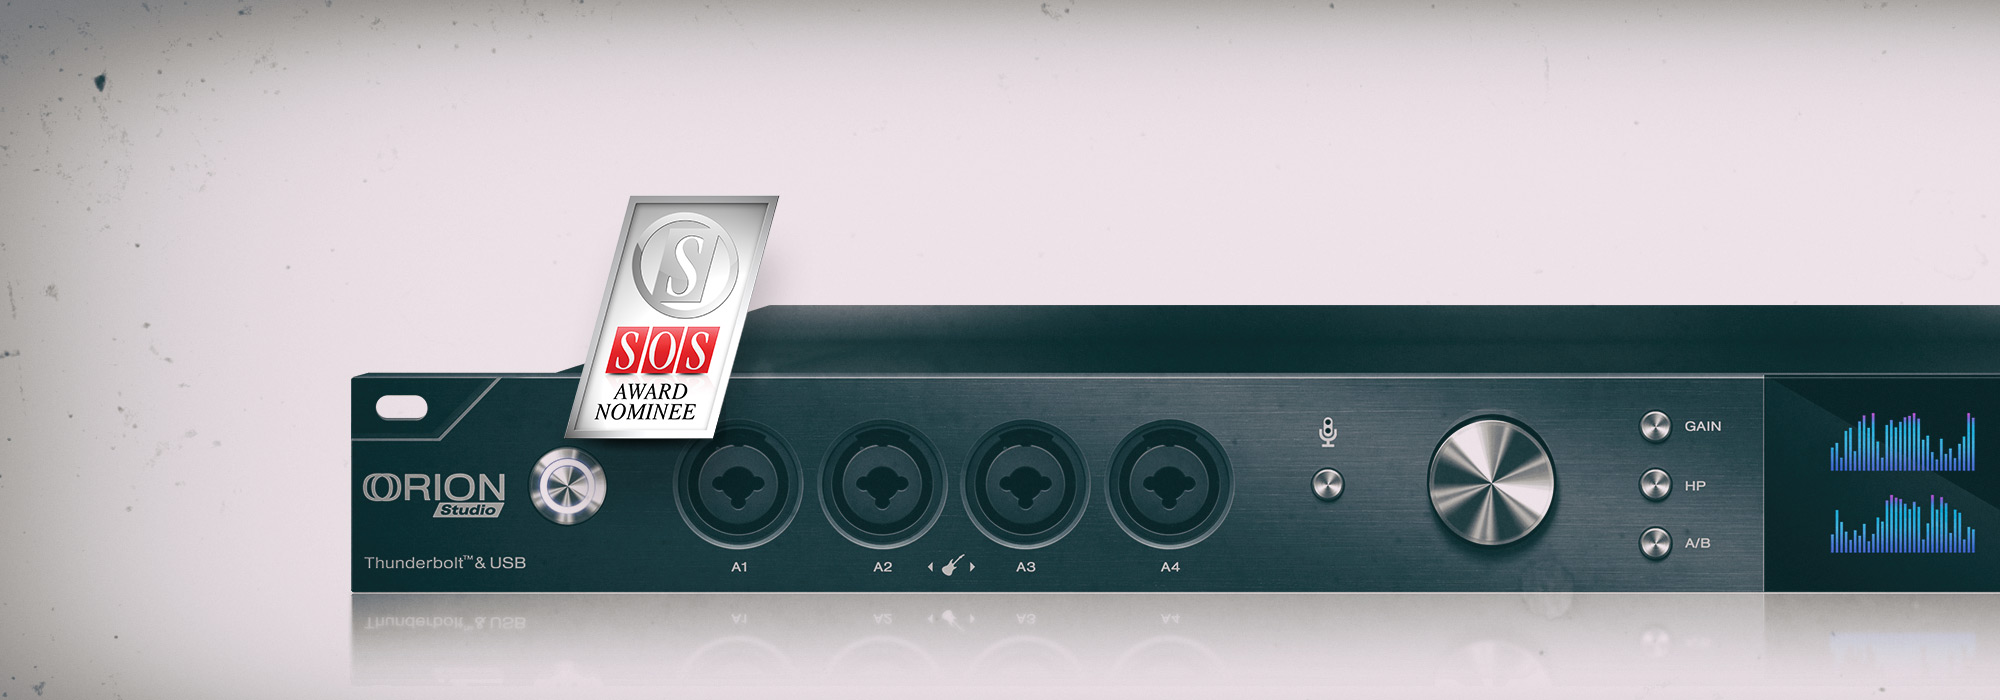 Orion Studio Nominated Best Audio Interface Award by Sound On Sound